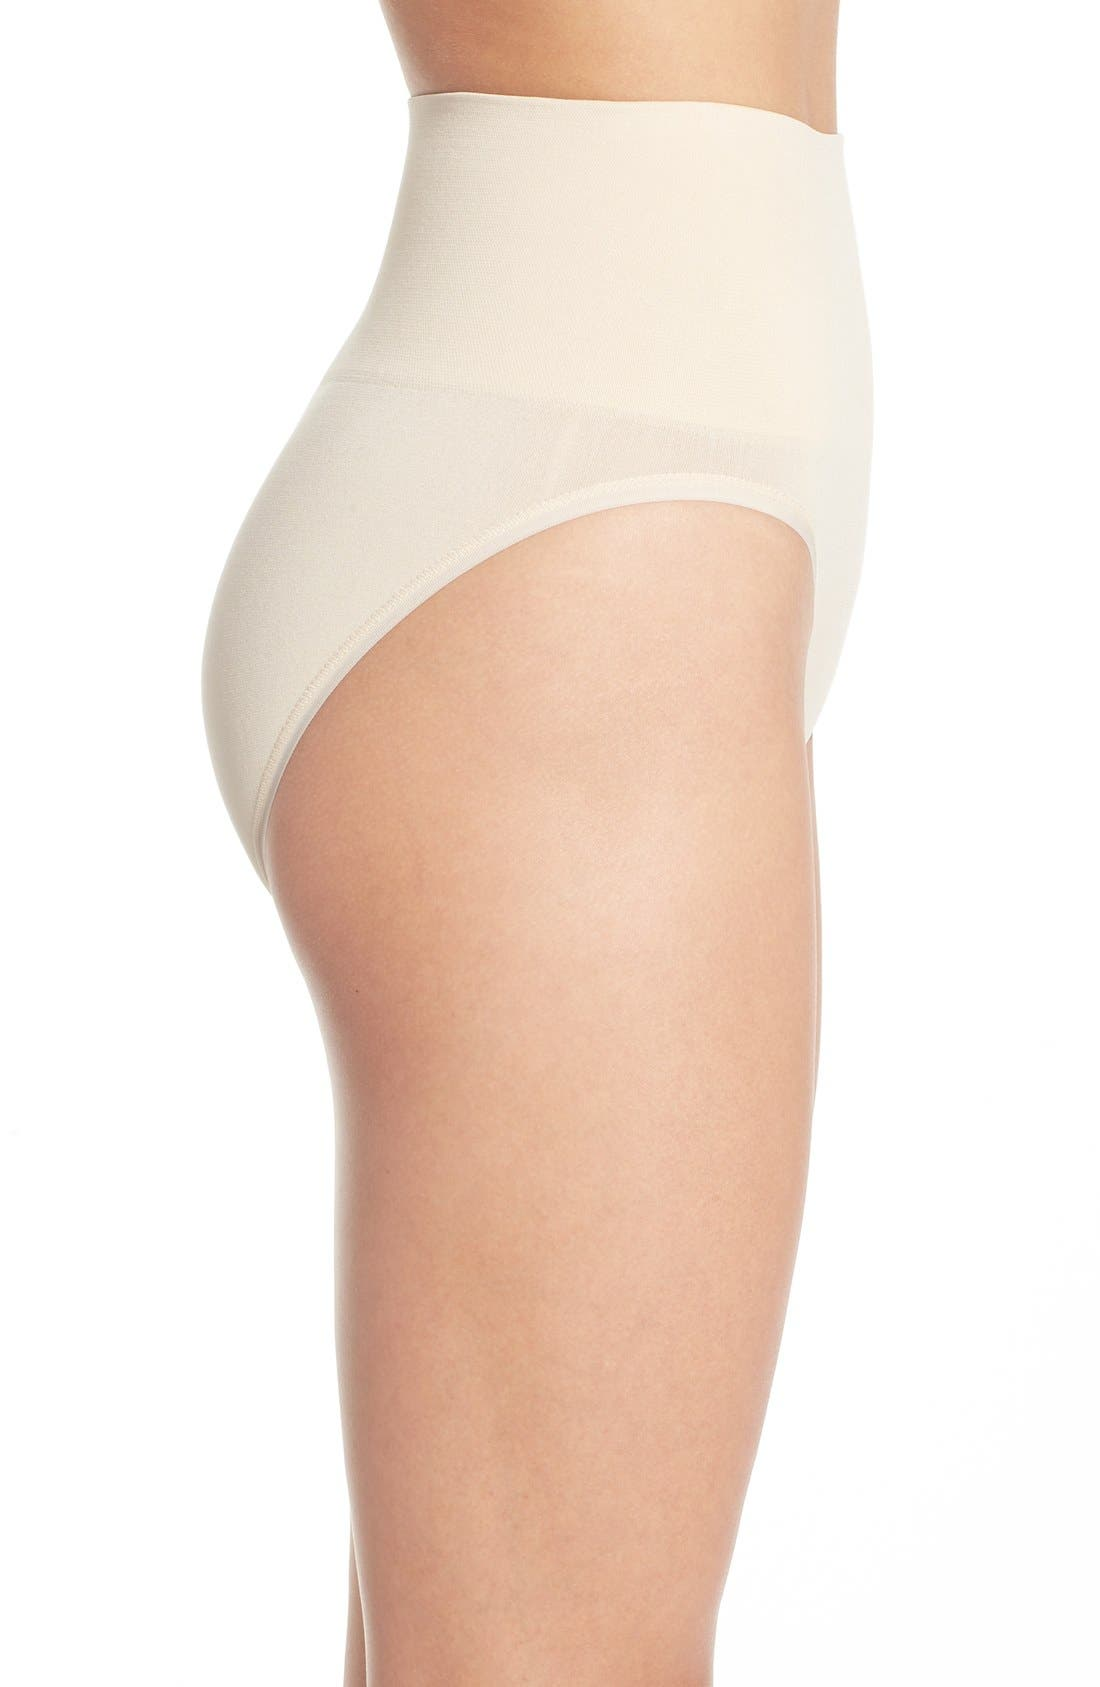 Alternate Image 3  - Yummie by Heather Thomson 'Nici' Shaping Briefs (2 for $30)